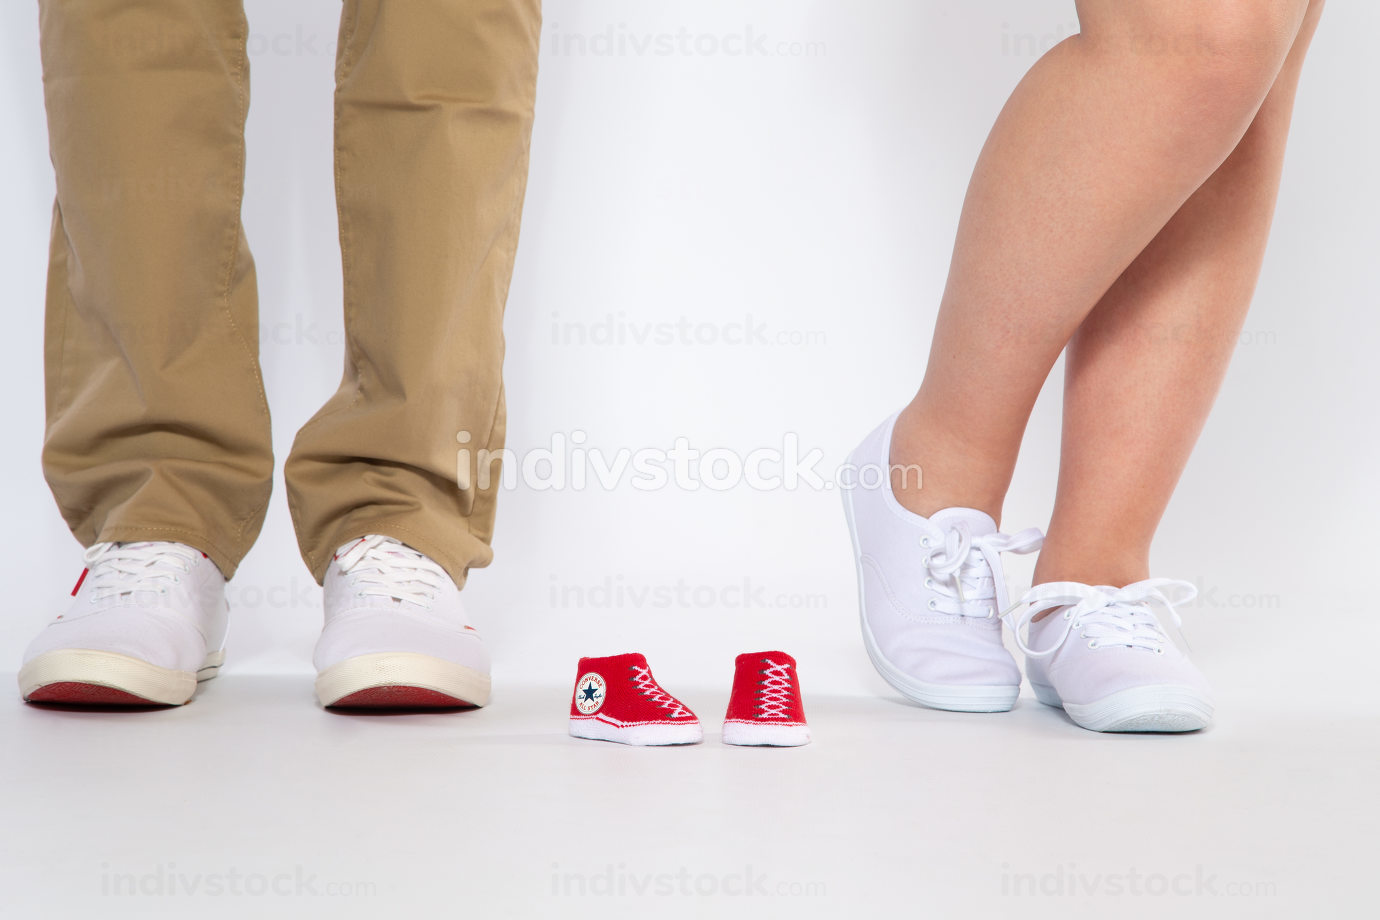 Two pairs of feet from the parents and shoes from an unborn baby